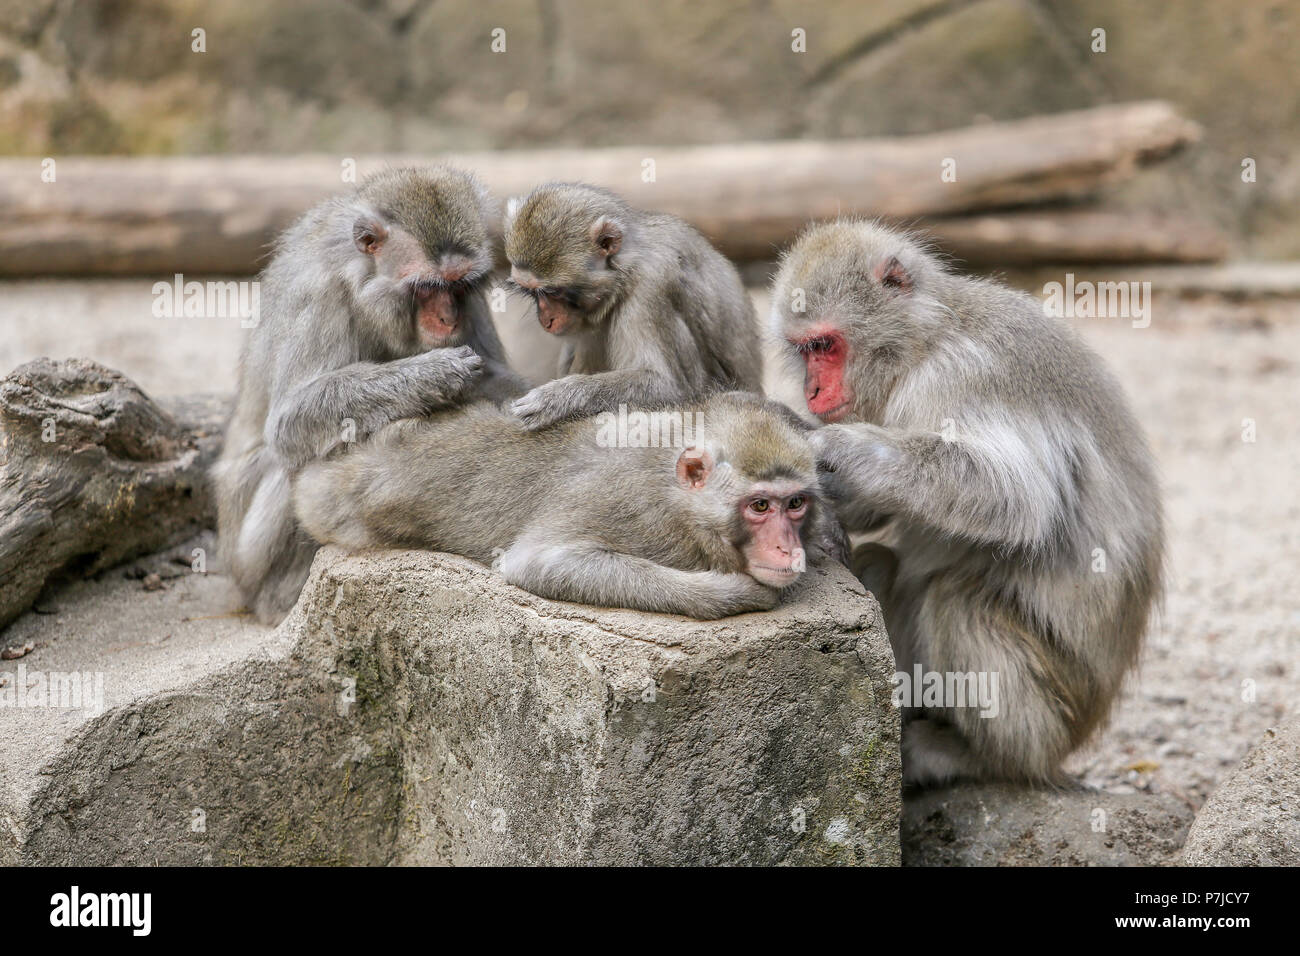 Monkeys Grooming Each Other High Resolution Stock Photography and Images -  Alamy